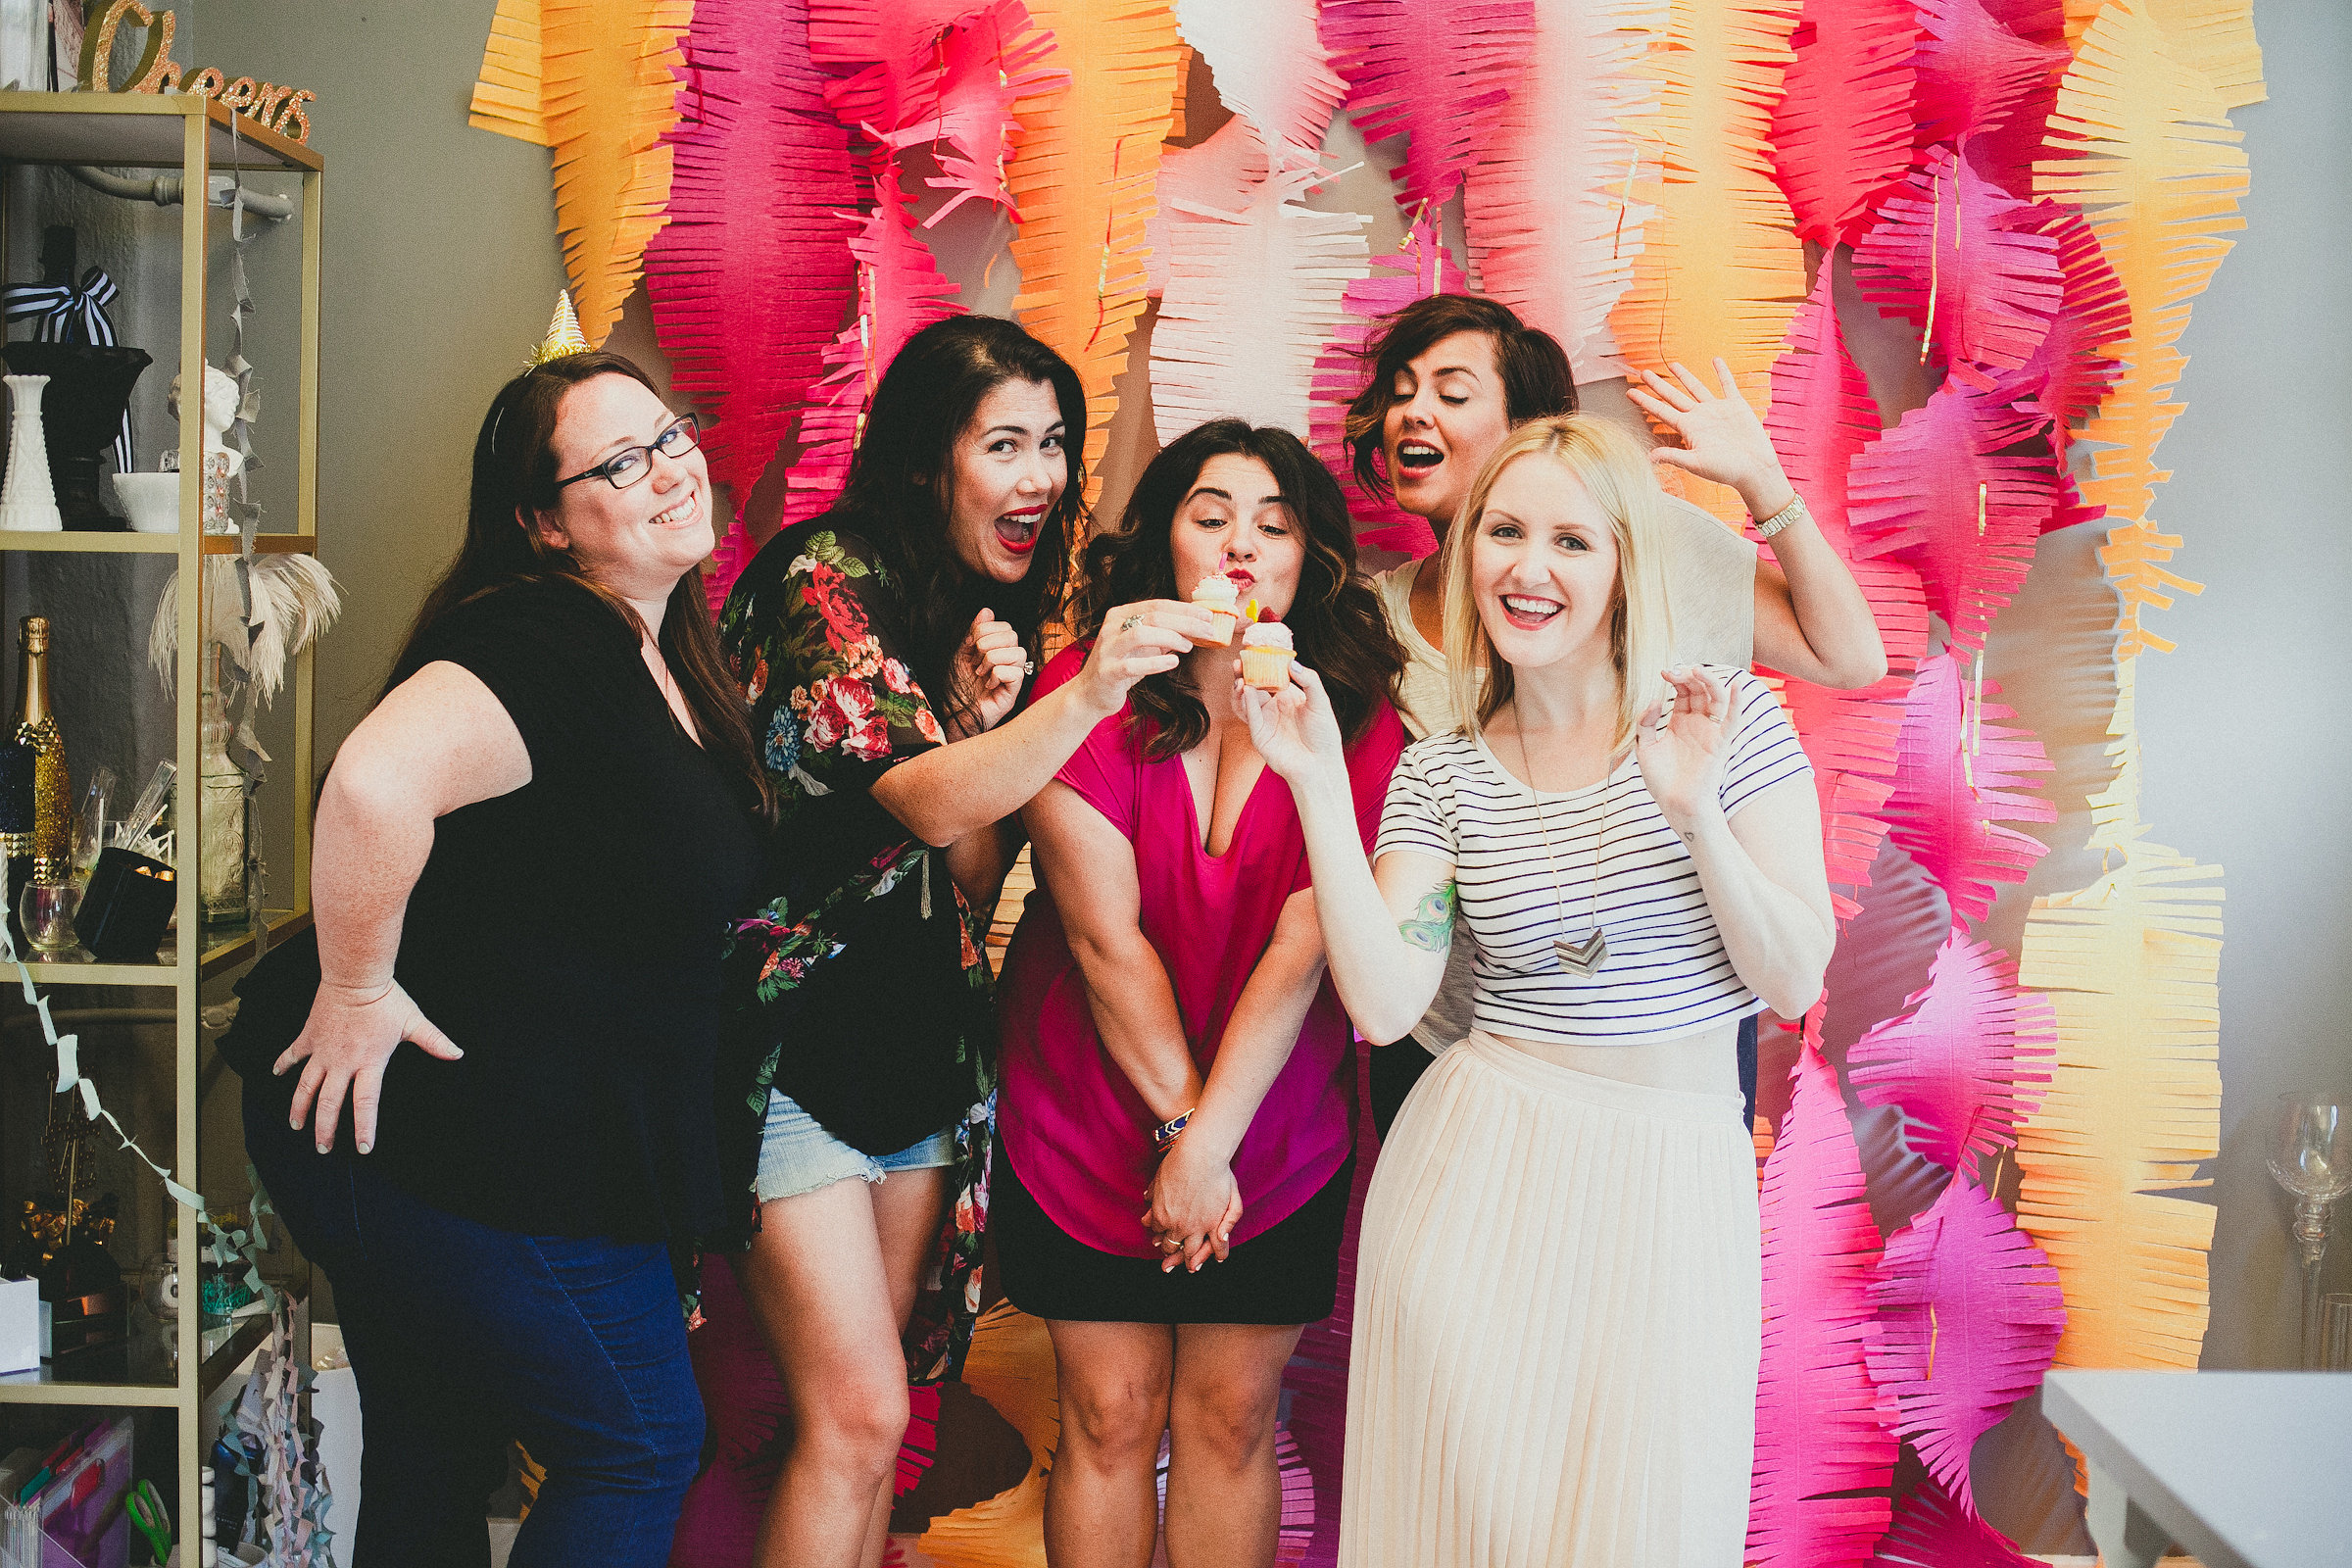 Desiree of Penny Blooms, Stevi of Hey There, Cupcake!, Danielle of Francine Ribeau Events, Nichole of Nic Roc Designs, Taryn of Twinkle & Toast (Melissa on the camera!)